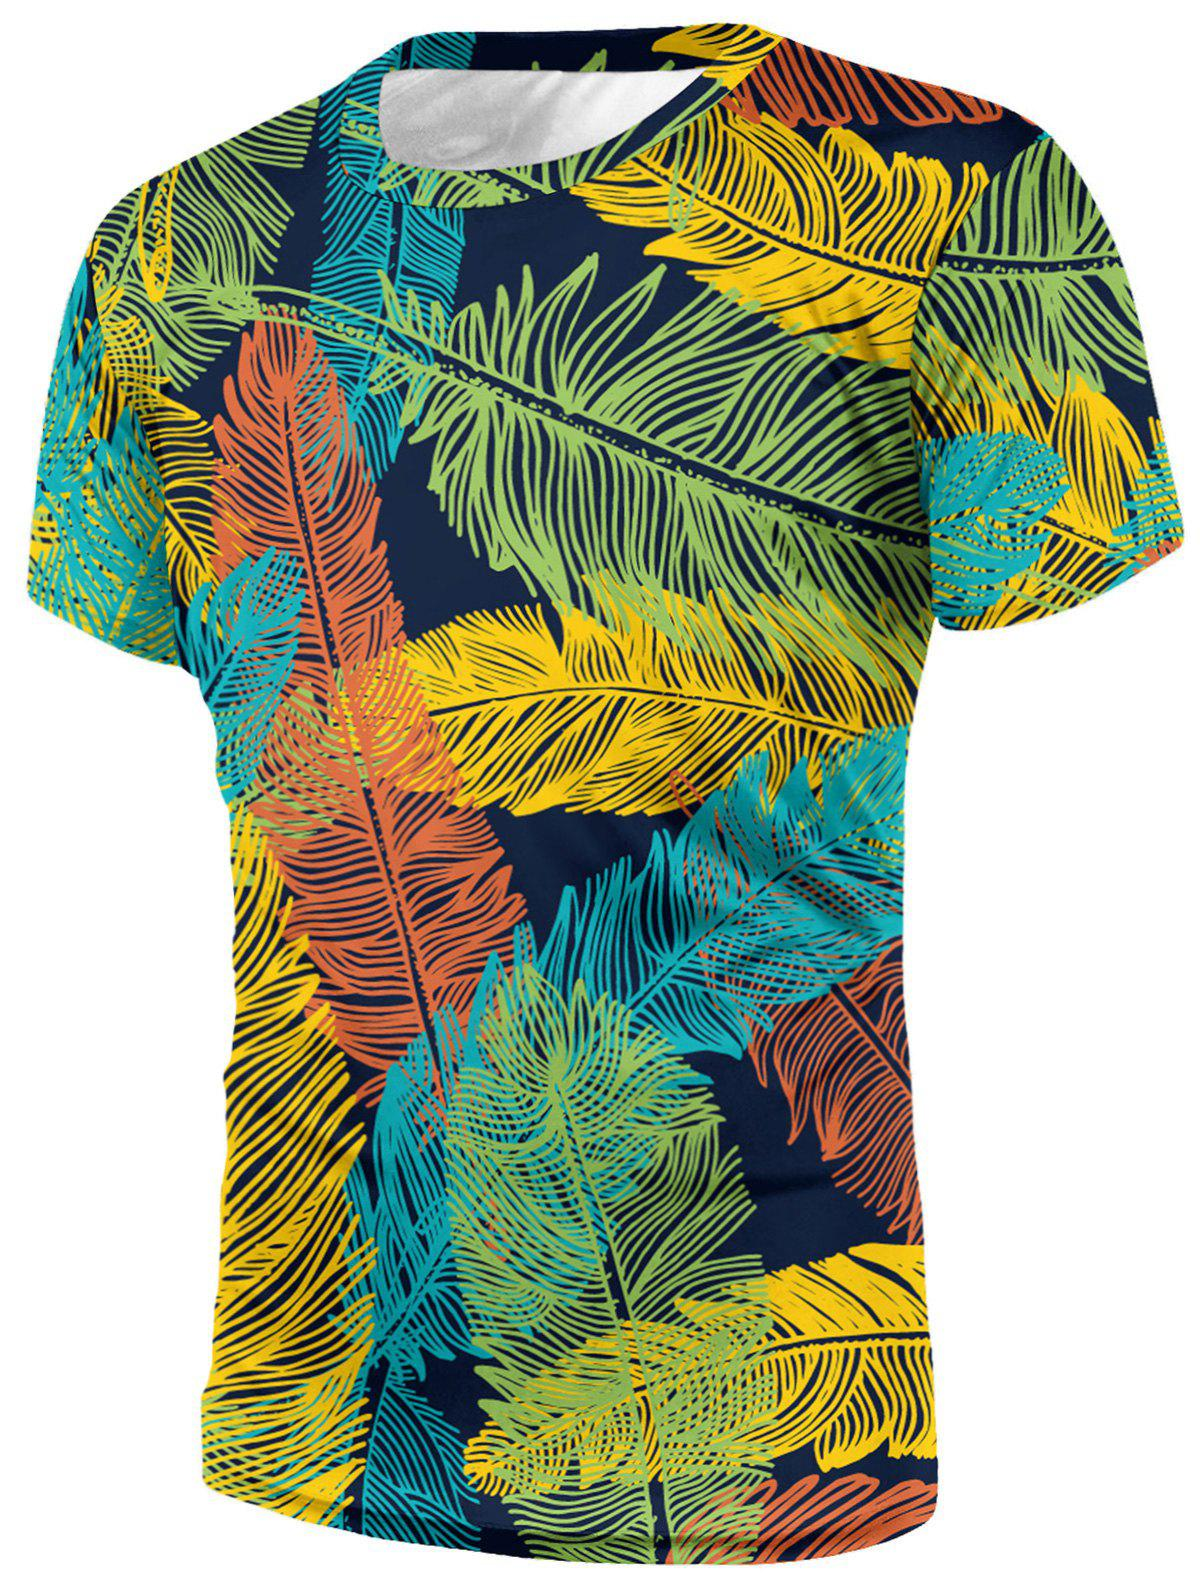 Crew Neck Leaf Print T-shirt - multicolor S